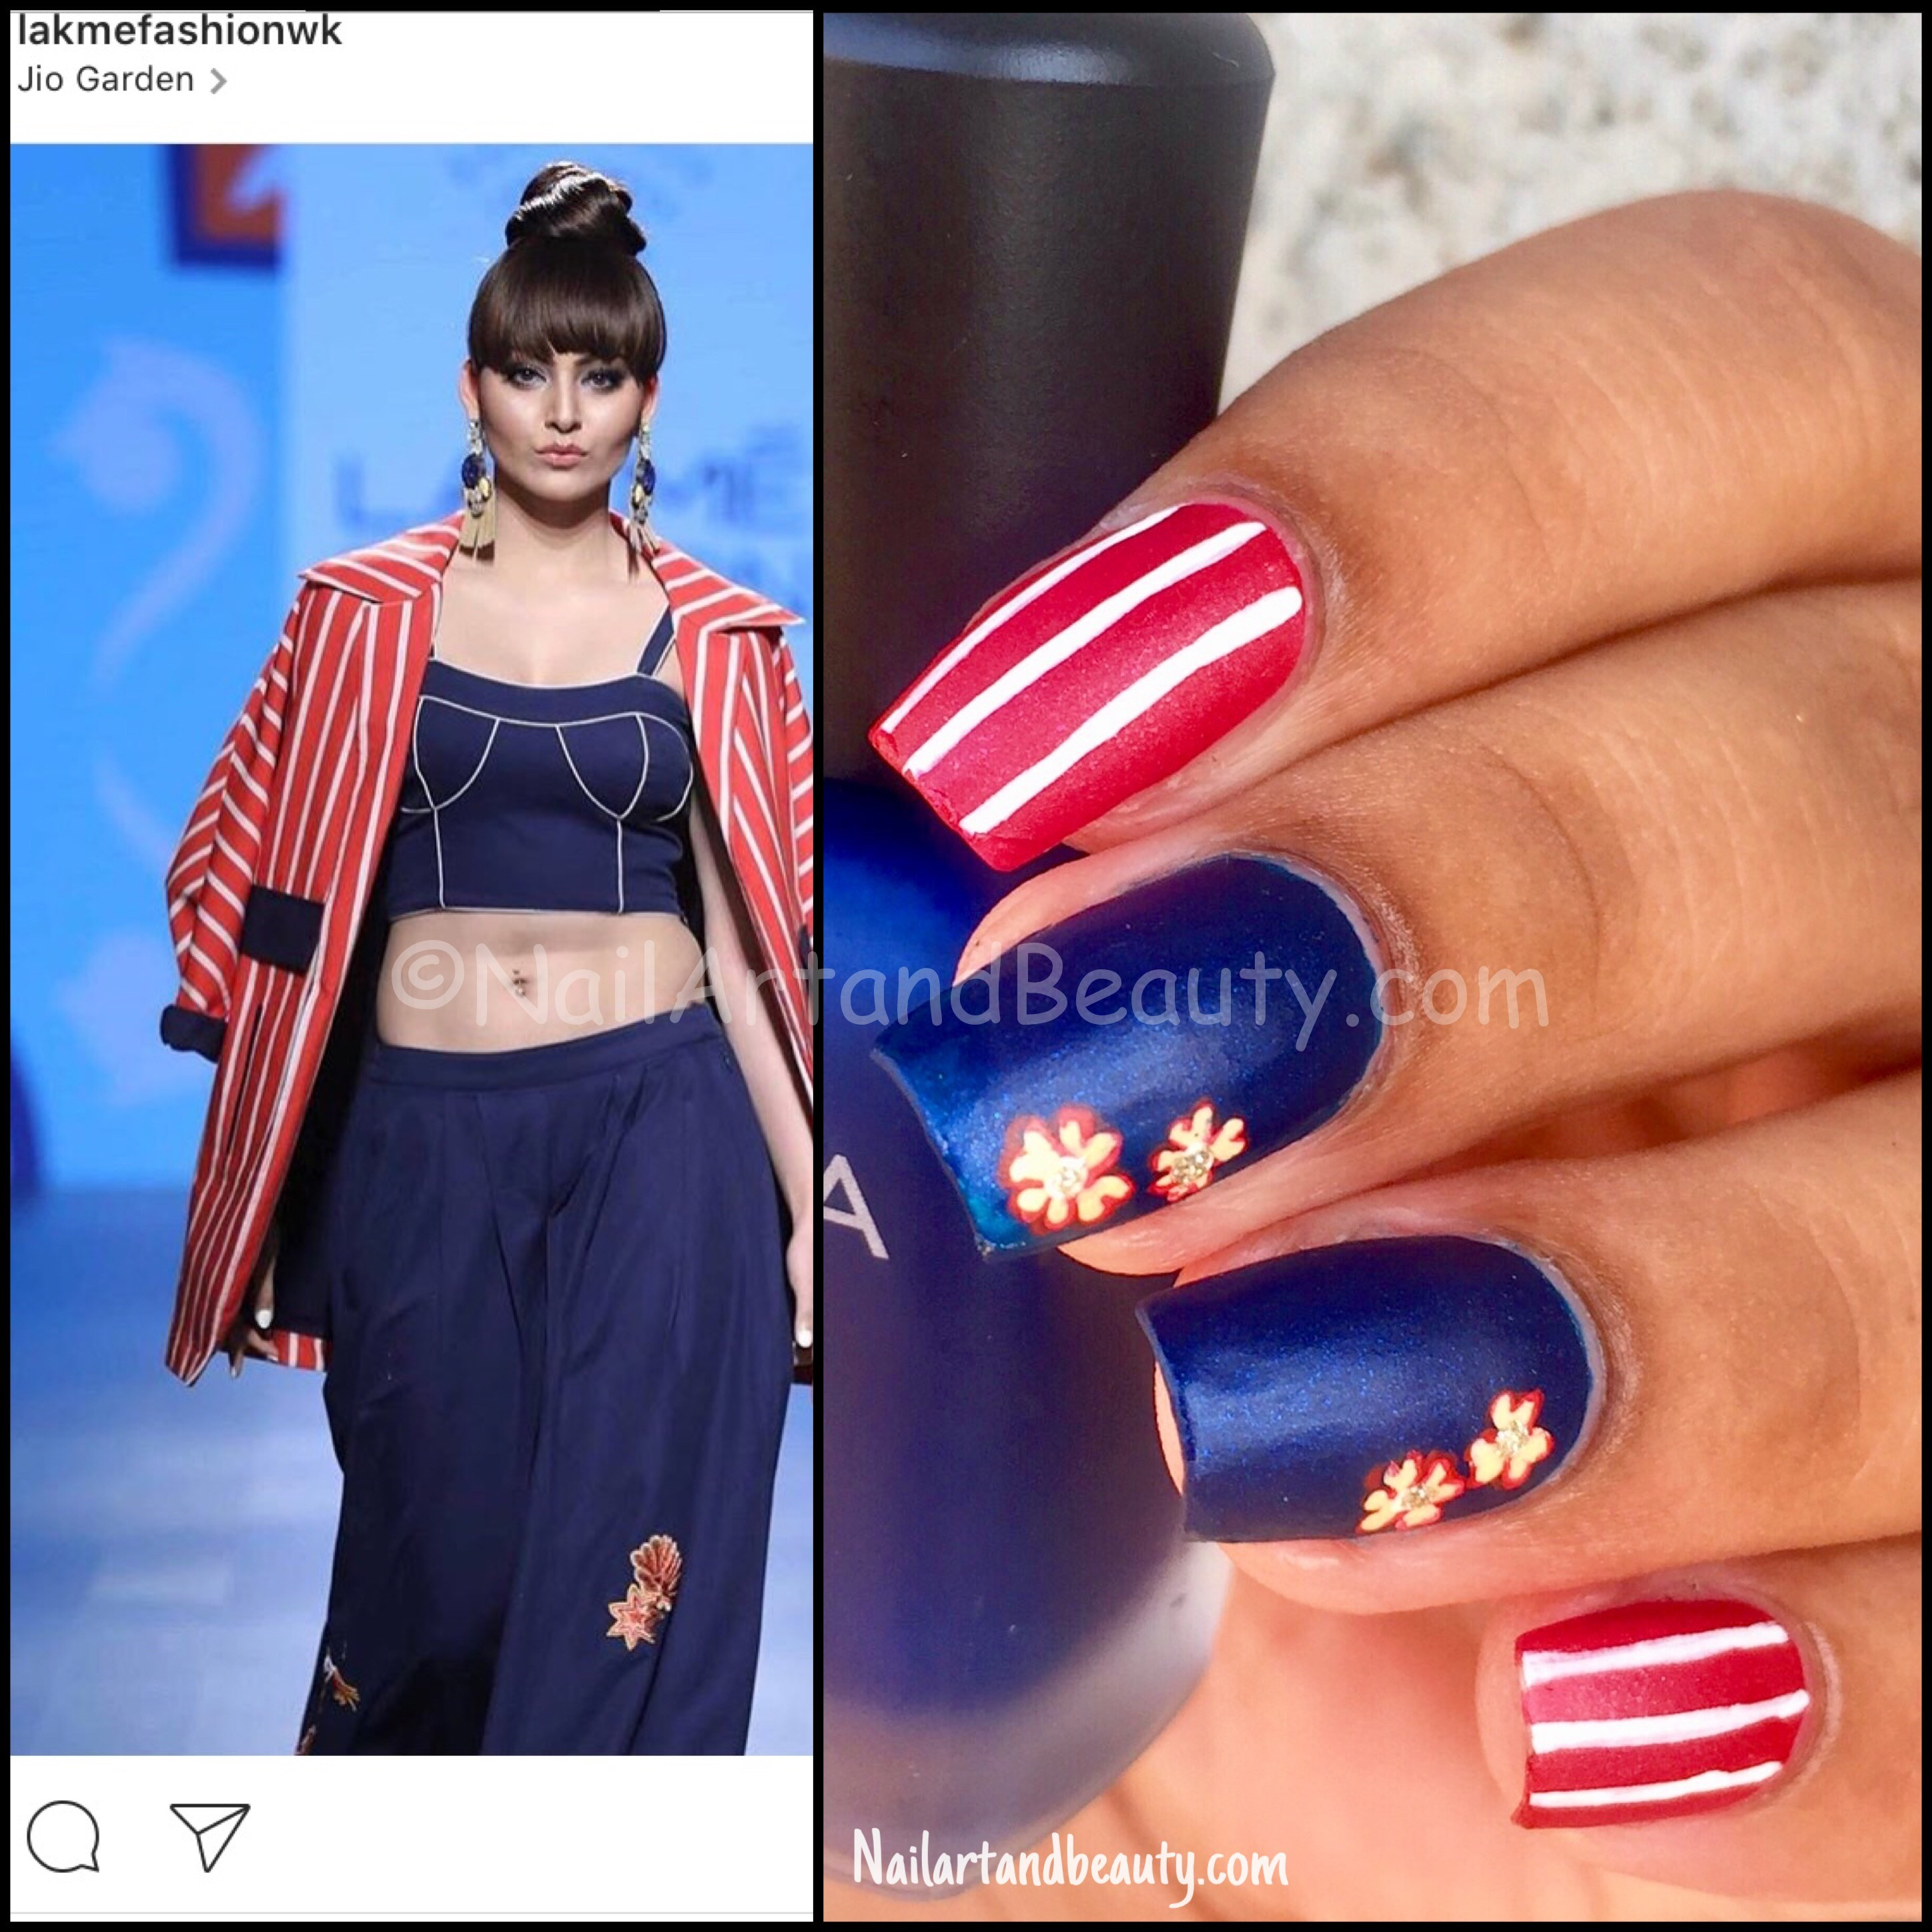 Nails Inspired by Lakme Fashion Week Inspired Nails by Rara Avis